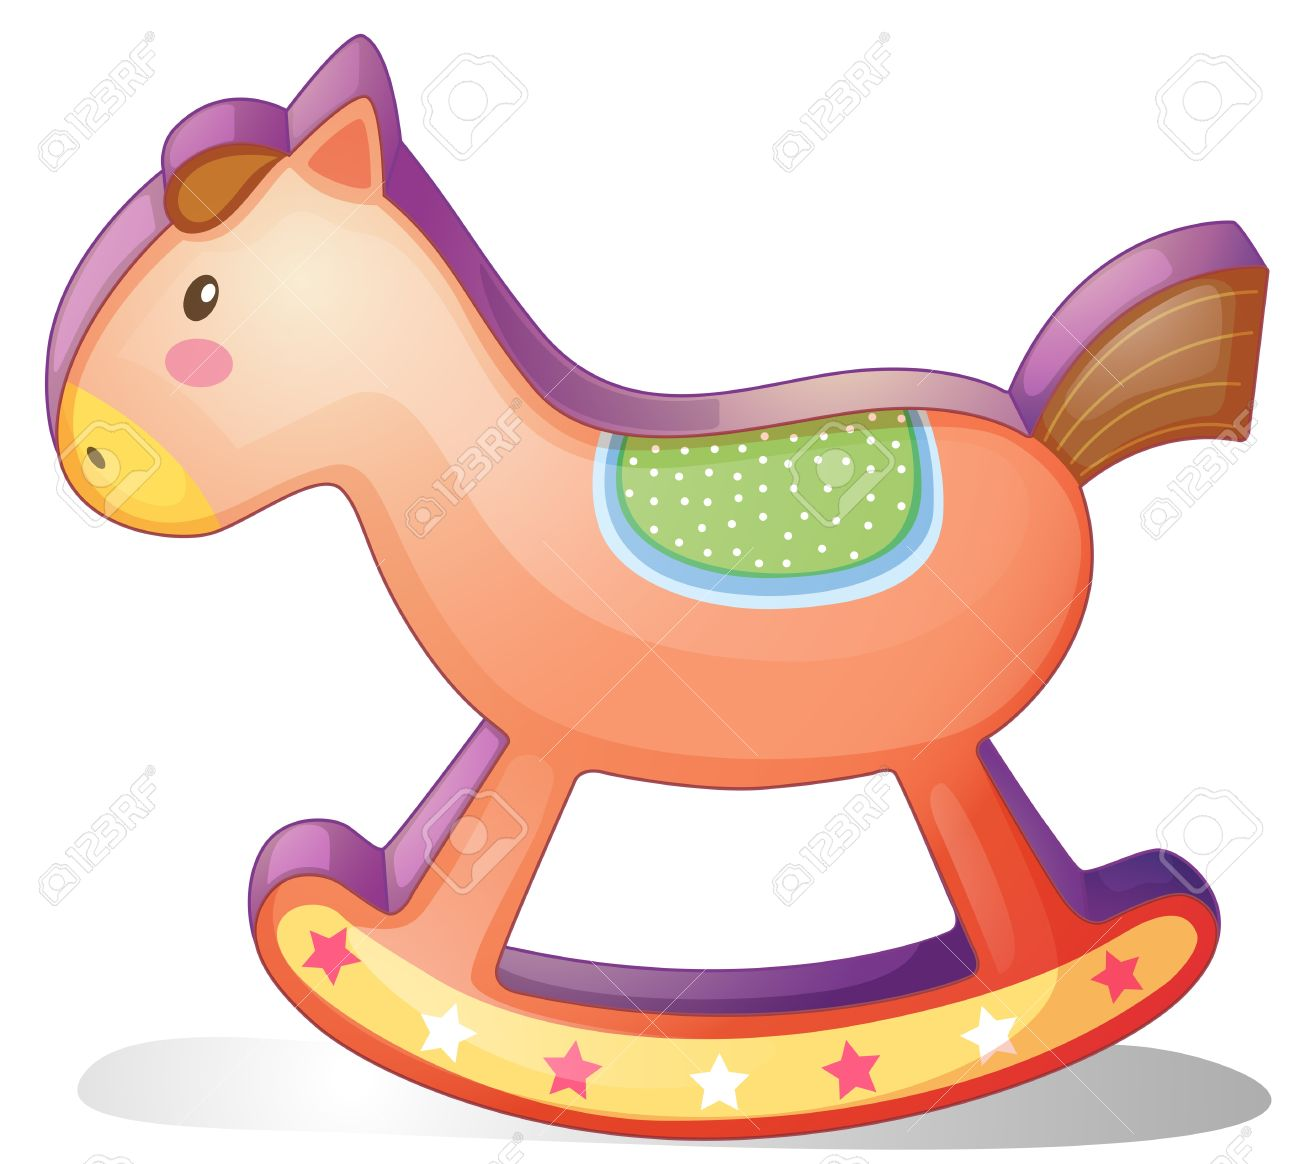 Illustration Of A Wooden Horse Toy On A White Background Royalty.